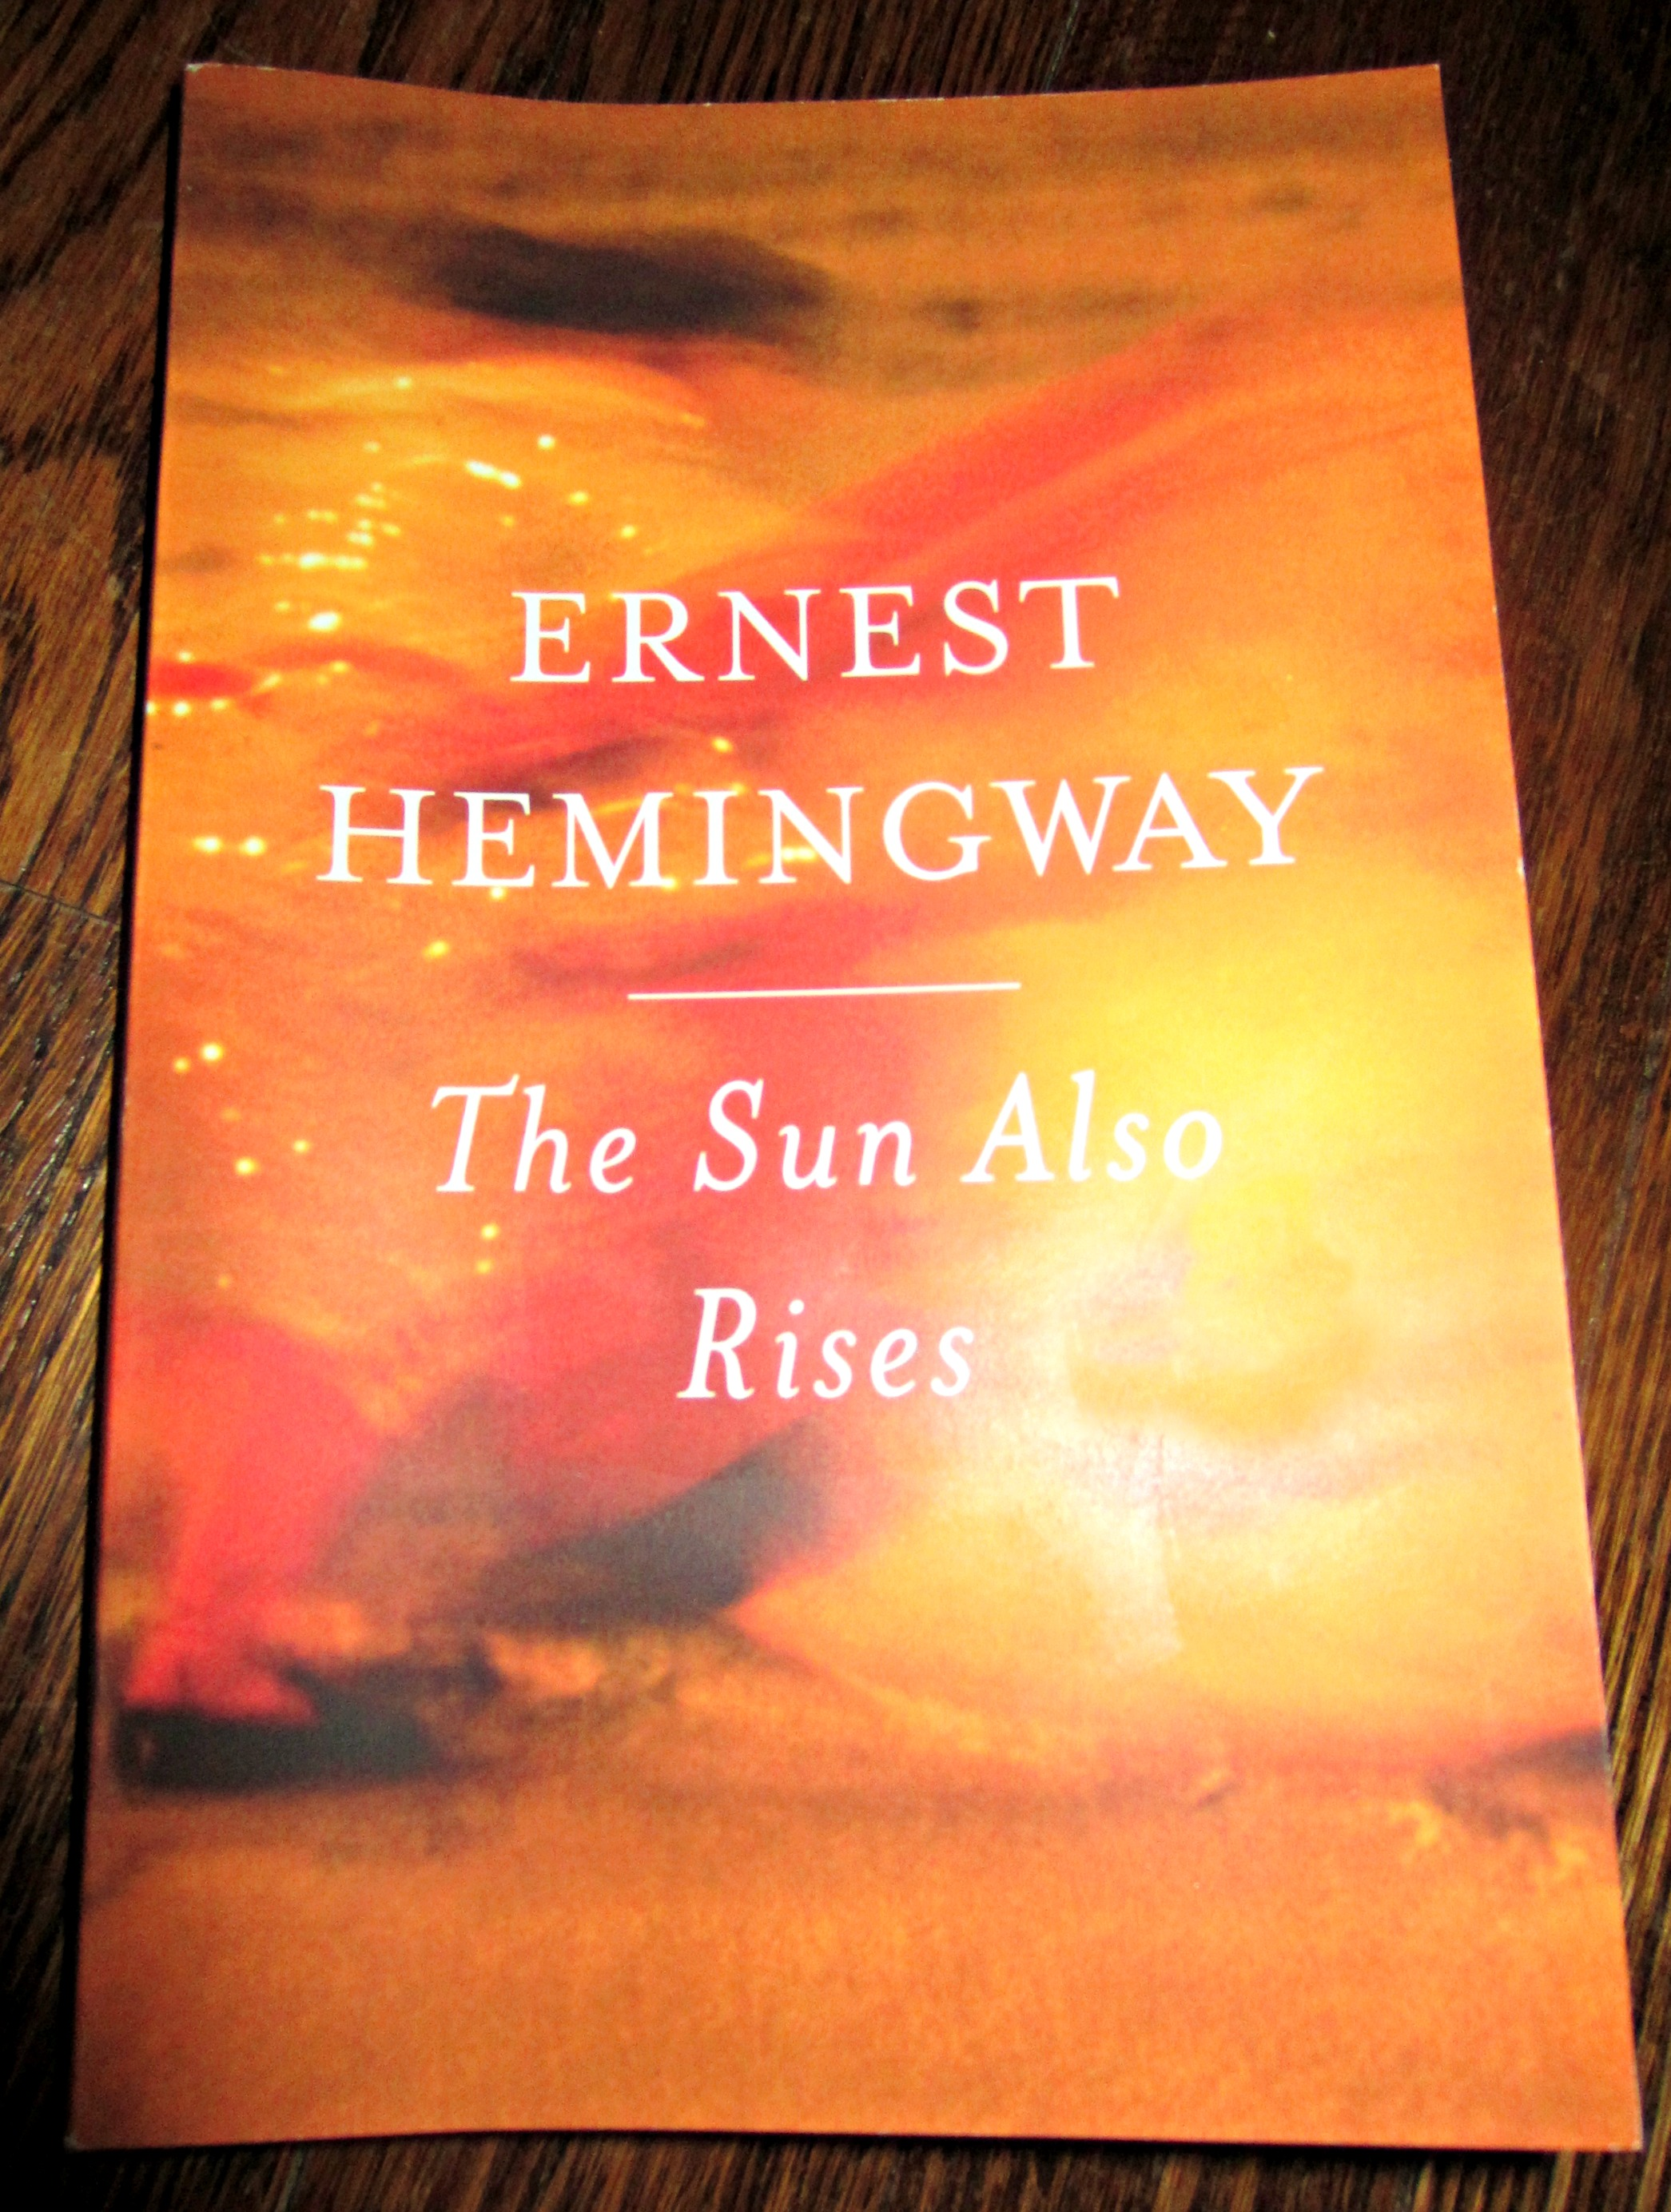 the sun also rises thought paper essay The sun also rises is a beautifully written account of a generation lost in an unknown cause that leaves them abandoned in the end  hemmingway wrote this story in a unique fashion  hemmingway wrote this story in a unique fashion.